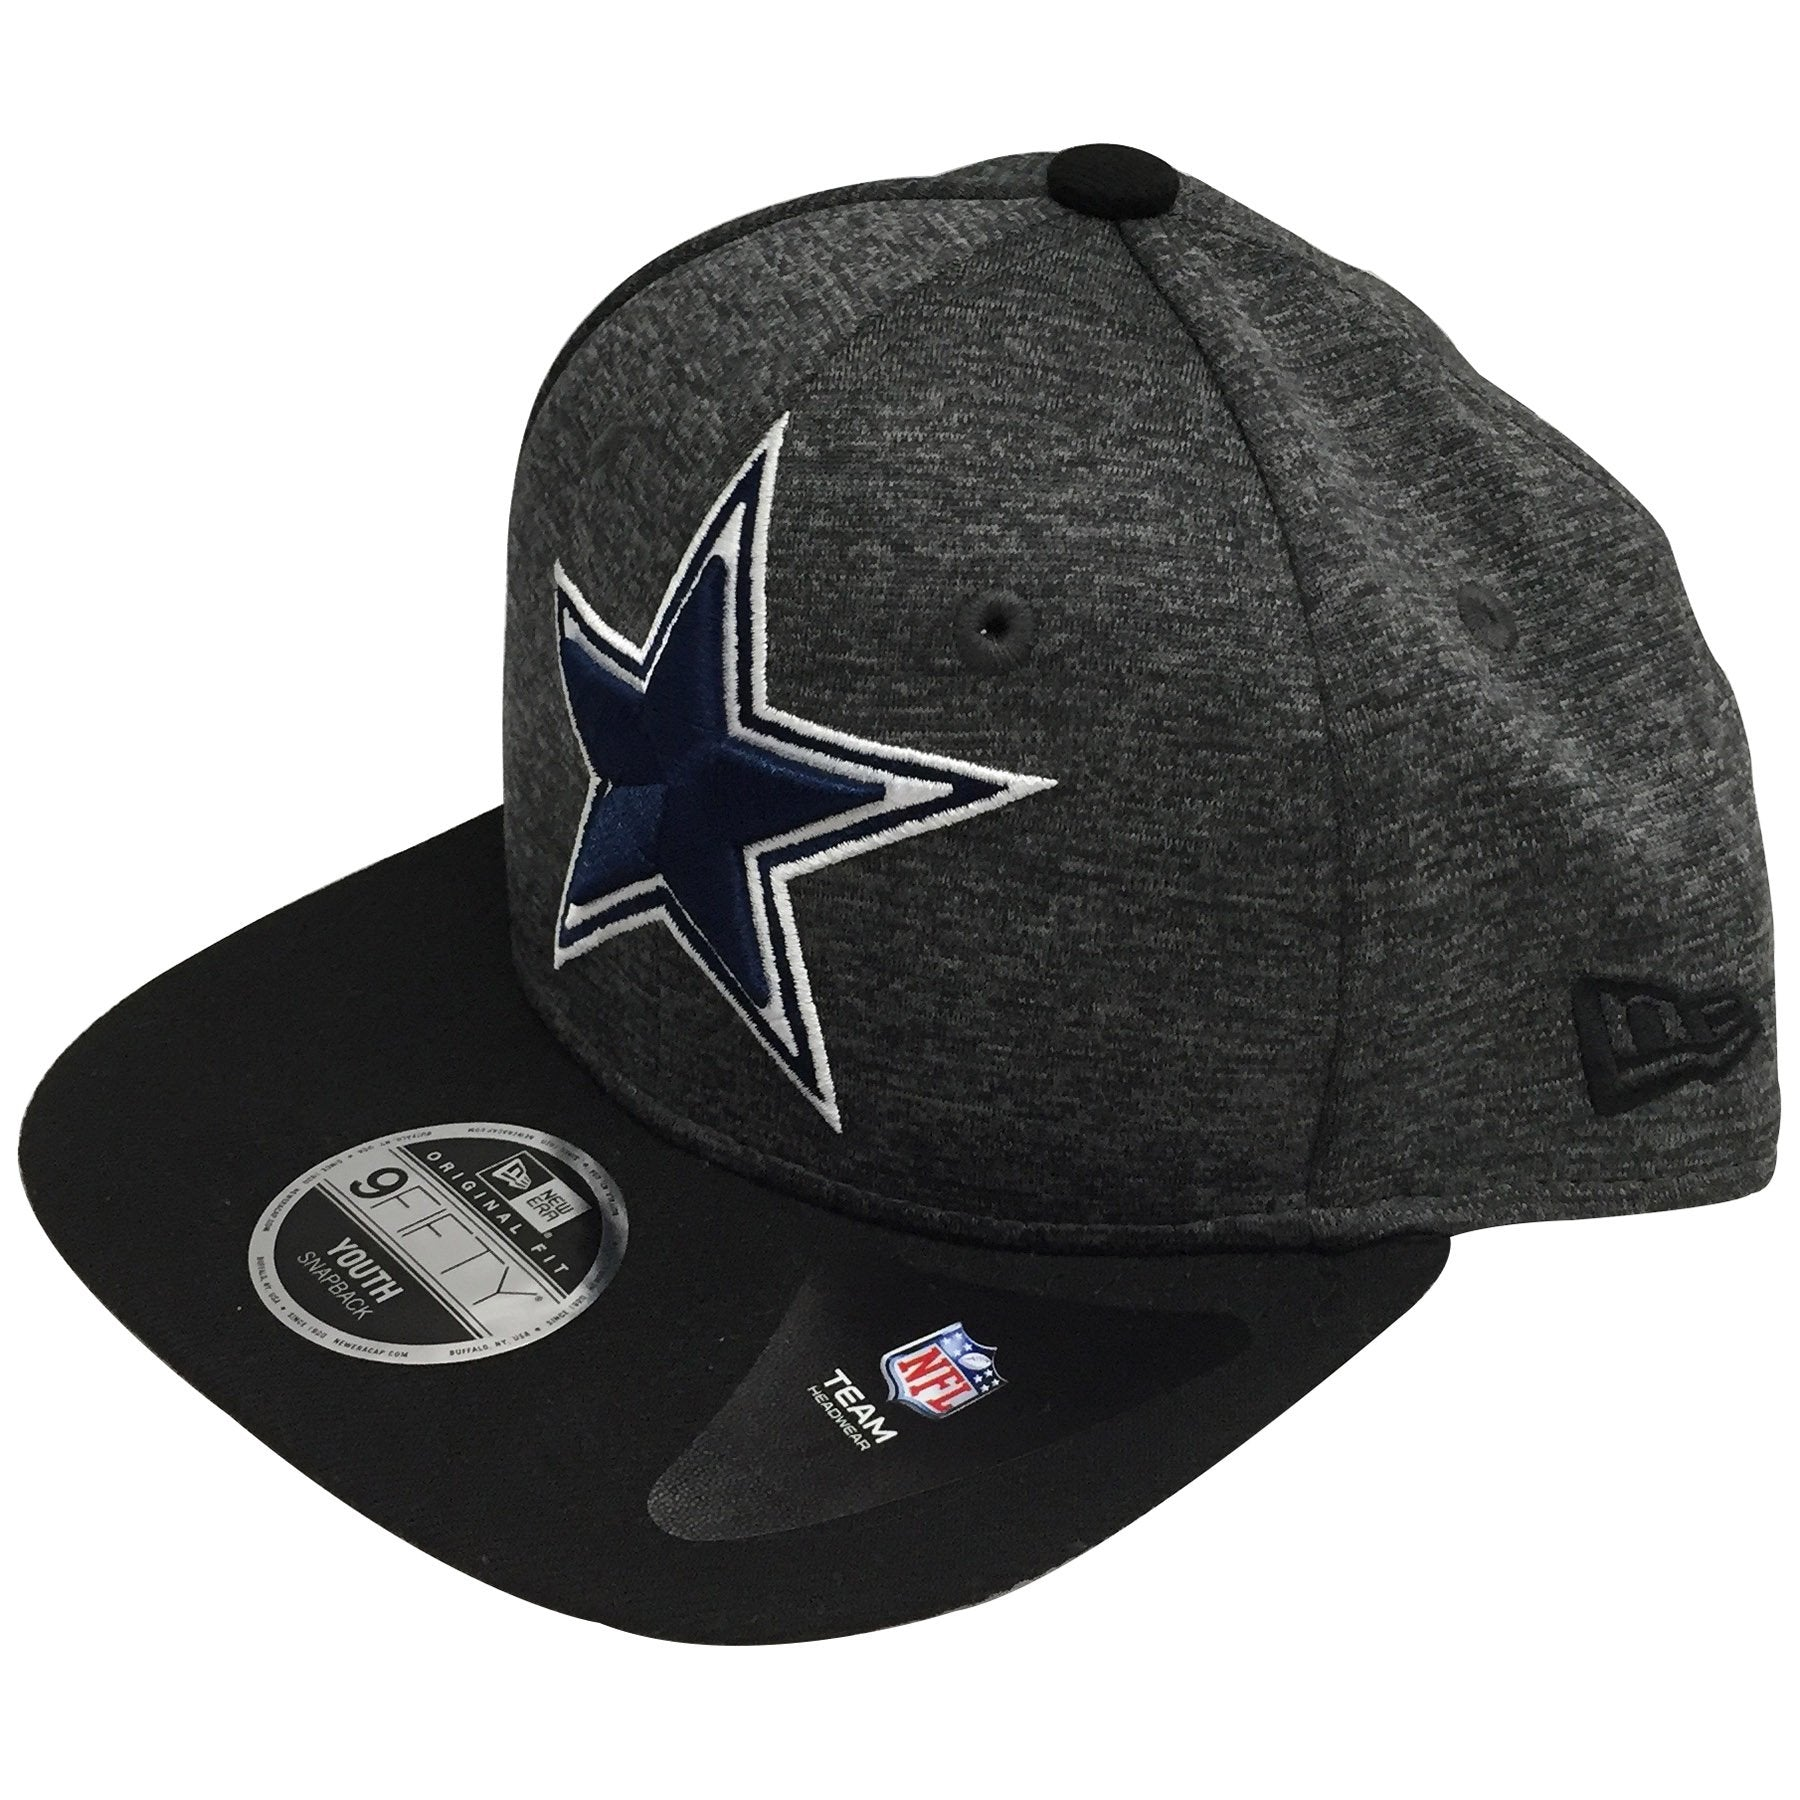 ... black  the kid s sized dallas cowboys sideline snapback hat has a high  structured heather gray crown and ... 637c54acba0